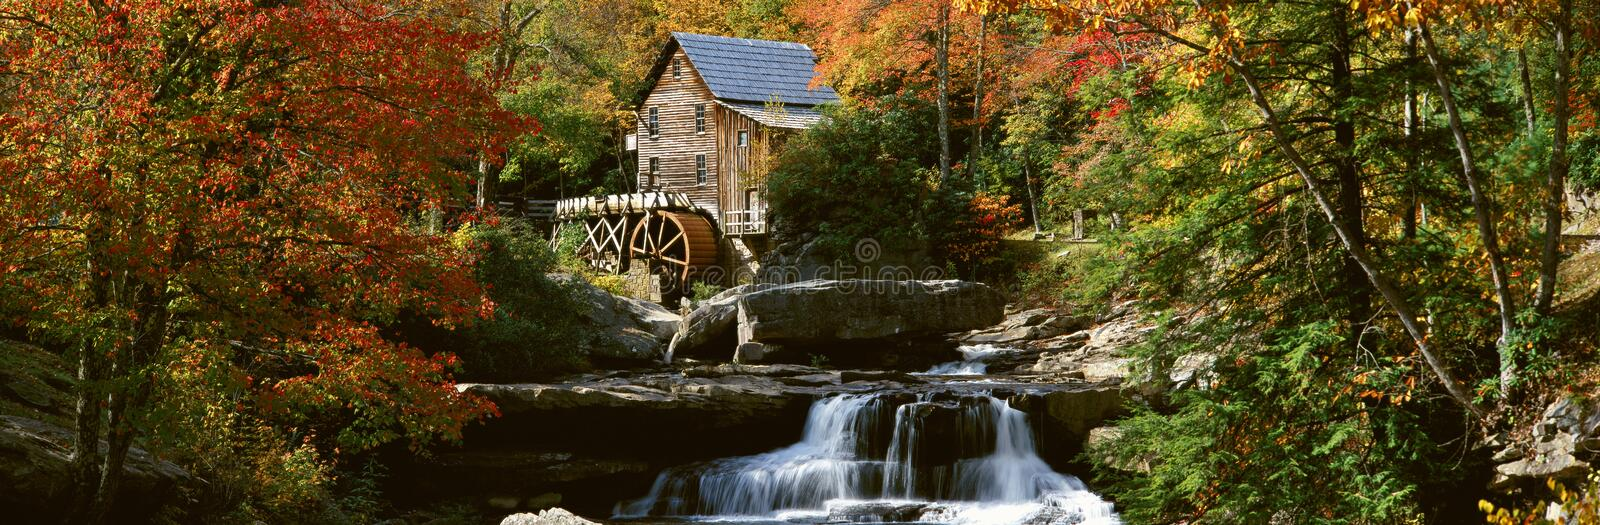 Panoramic of Glade Creek Grist Mil and autumn reflections and waterfall in Babcock State Park, WV stock photos